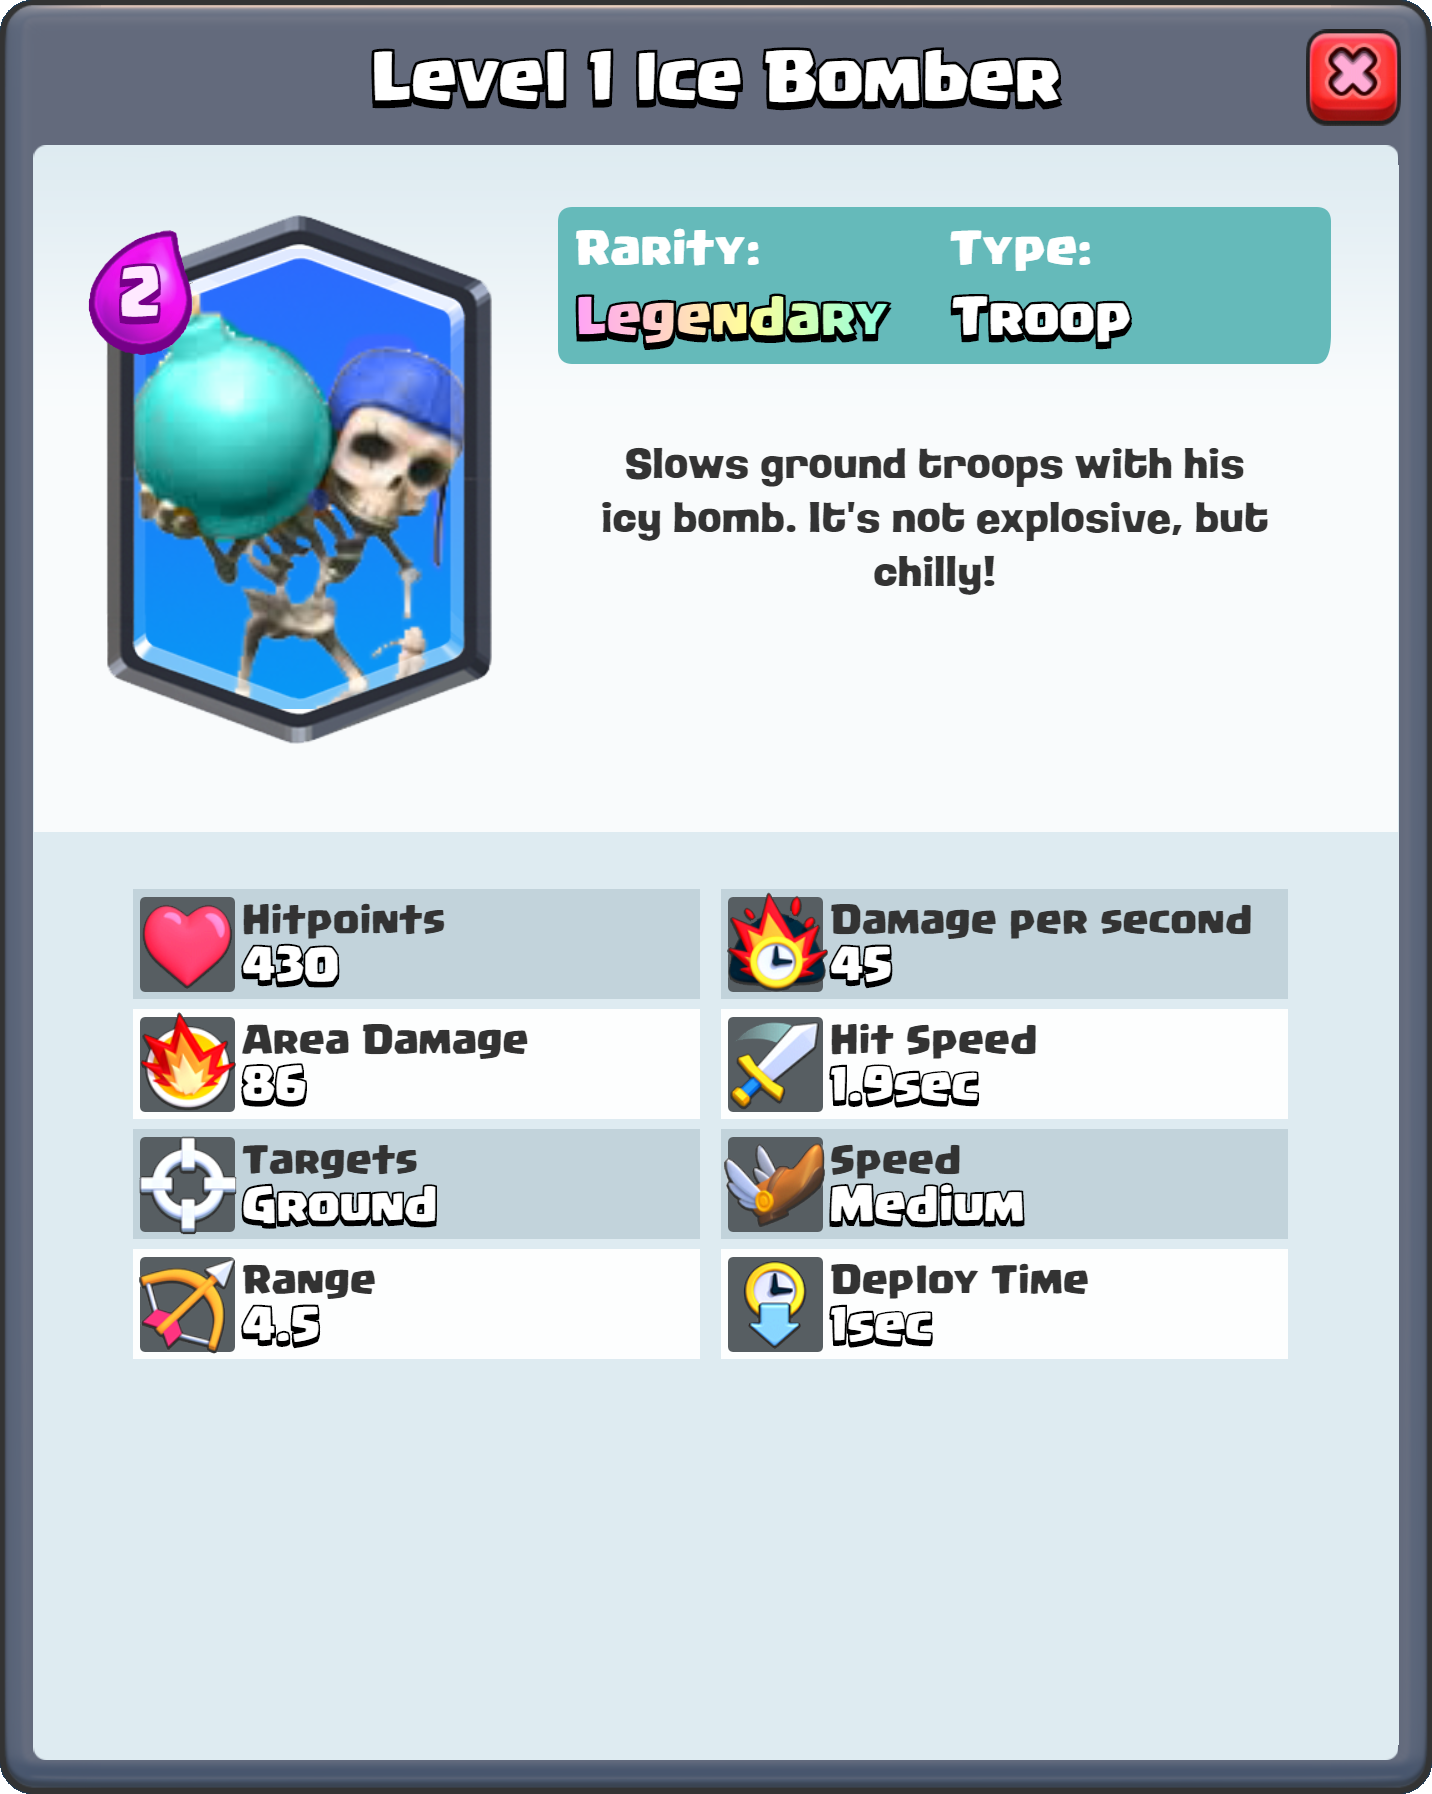 Image Level 1 Ice Bomber Fq Png Clash Royale Wiki